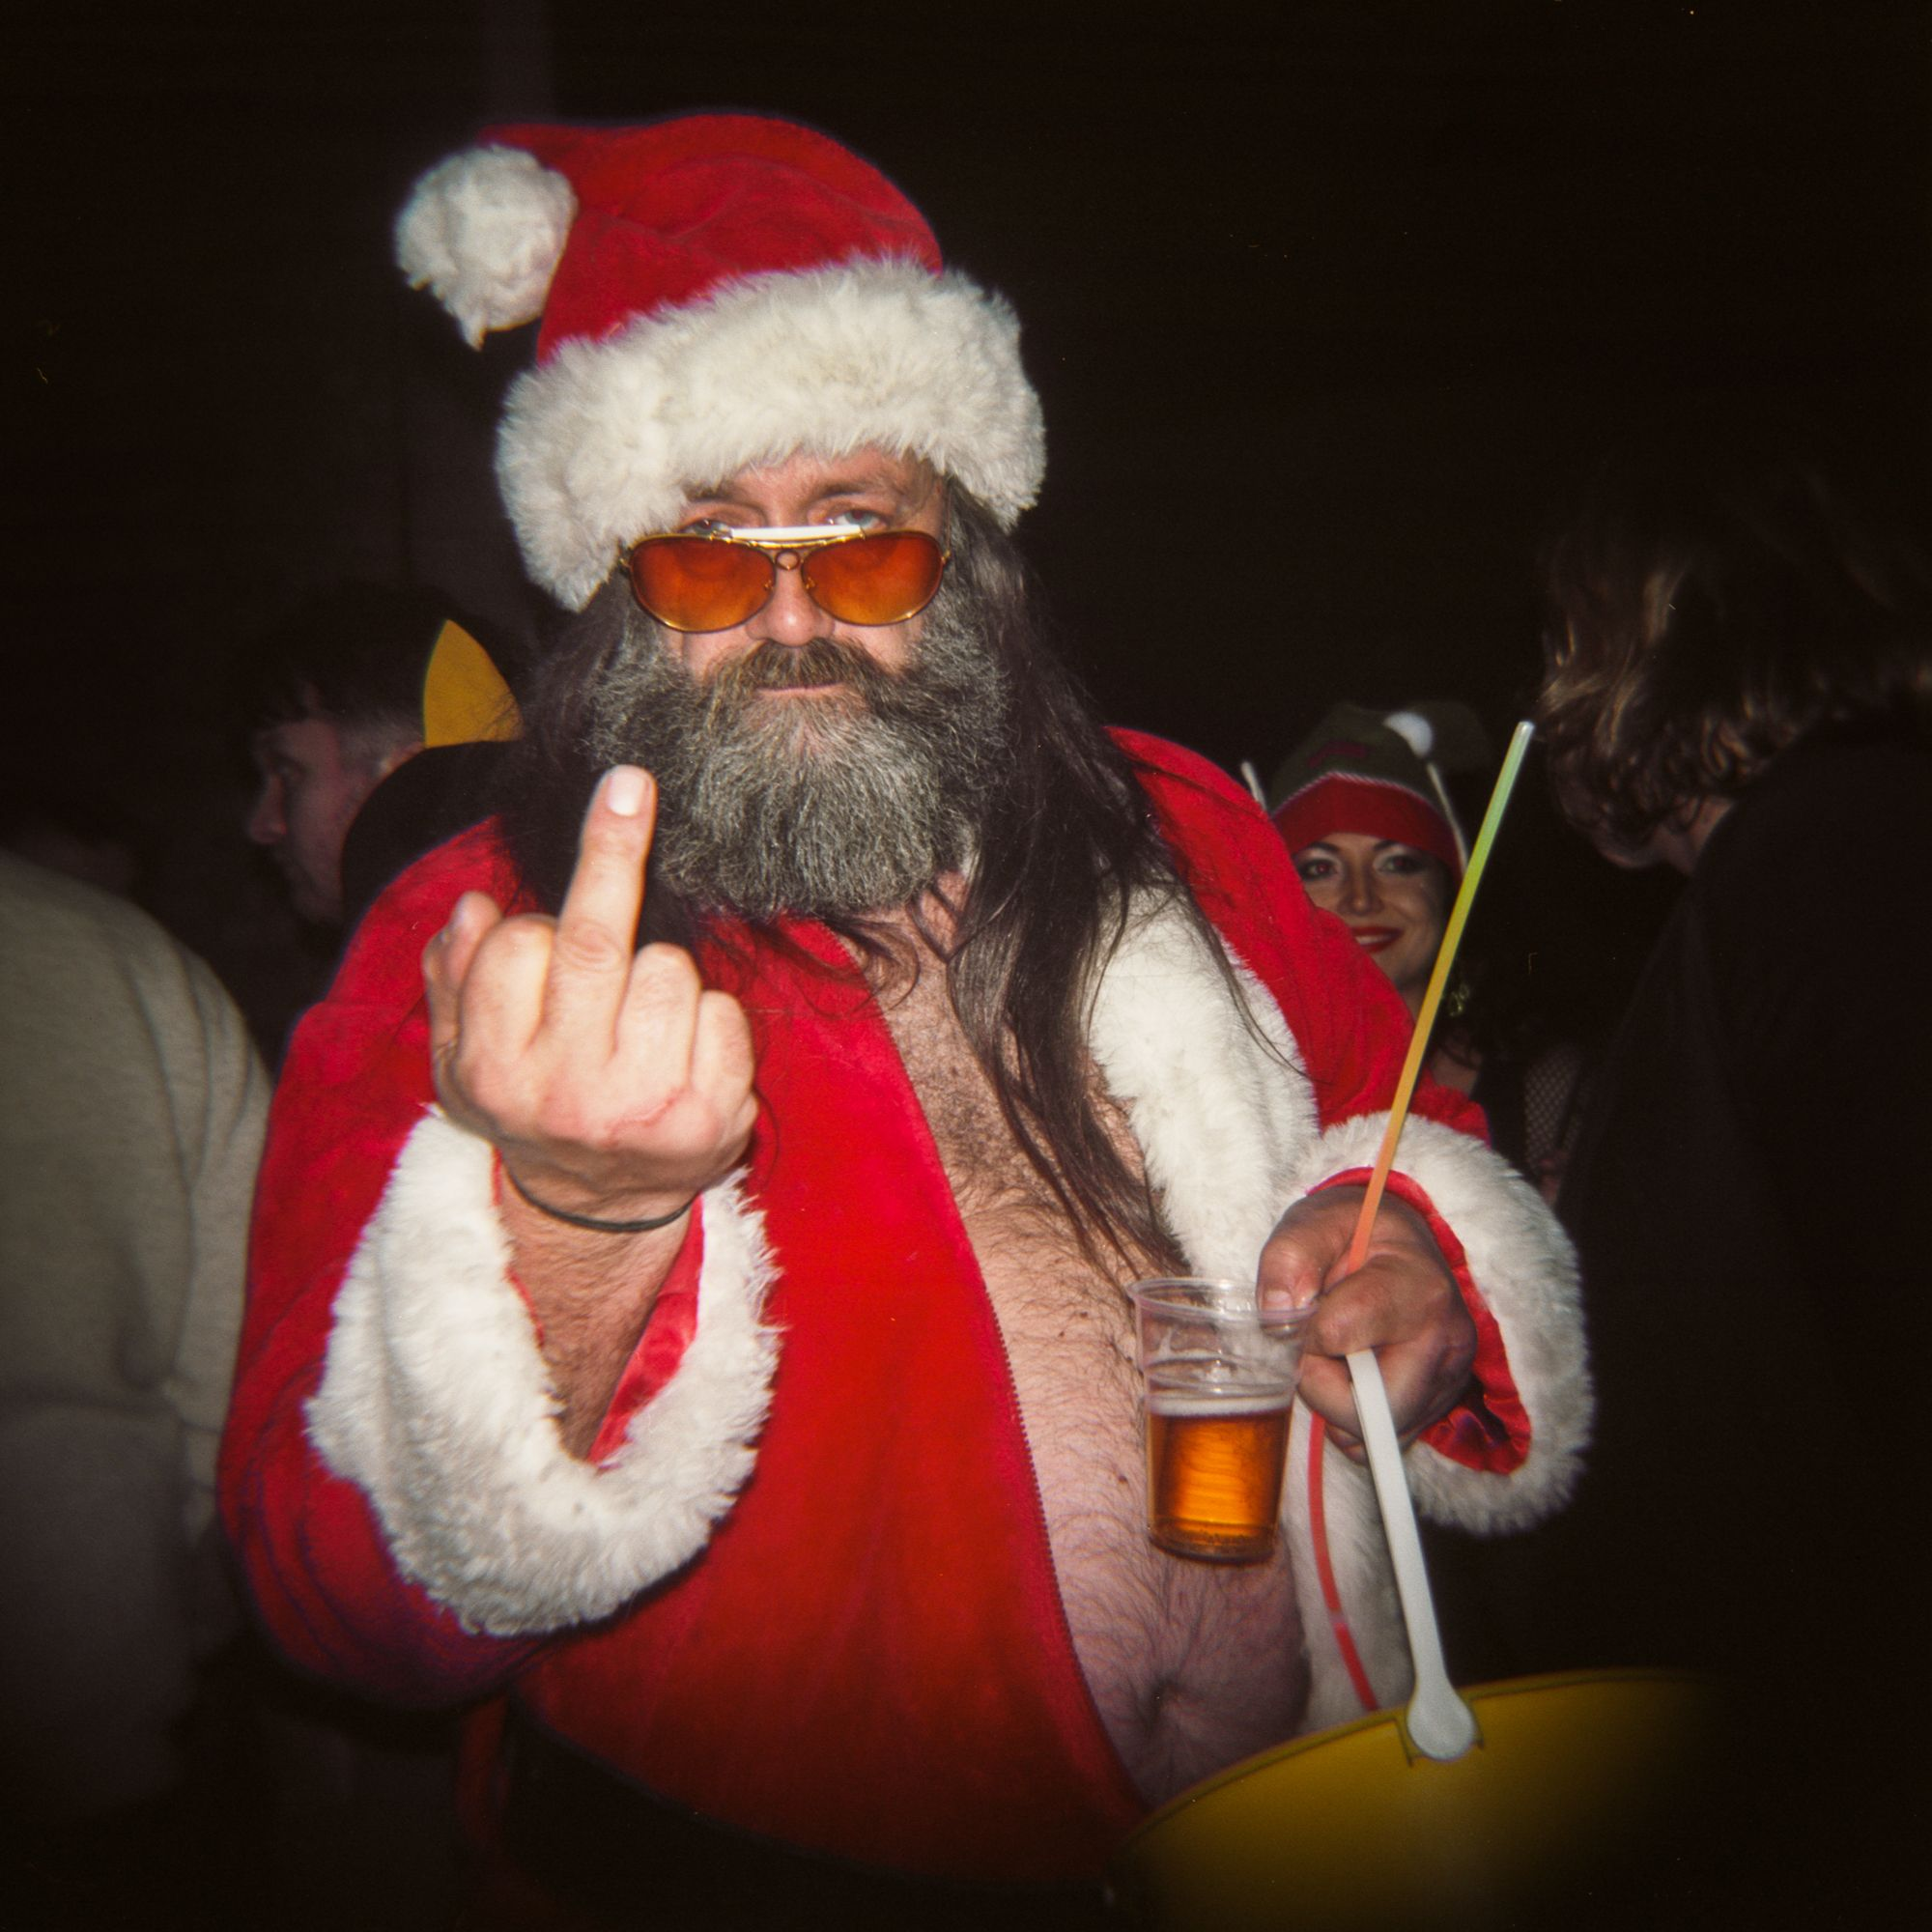 A Very Very Bad Santa At A Christmas Party In London Oc 2000 X 2000 Bad Santa Creepy Christmas Christmas Humor